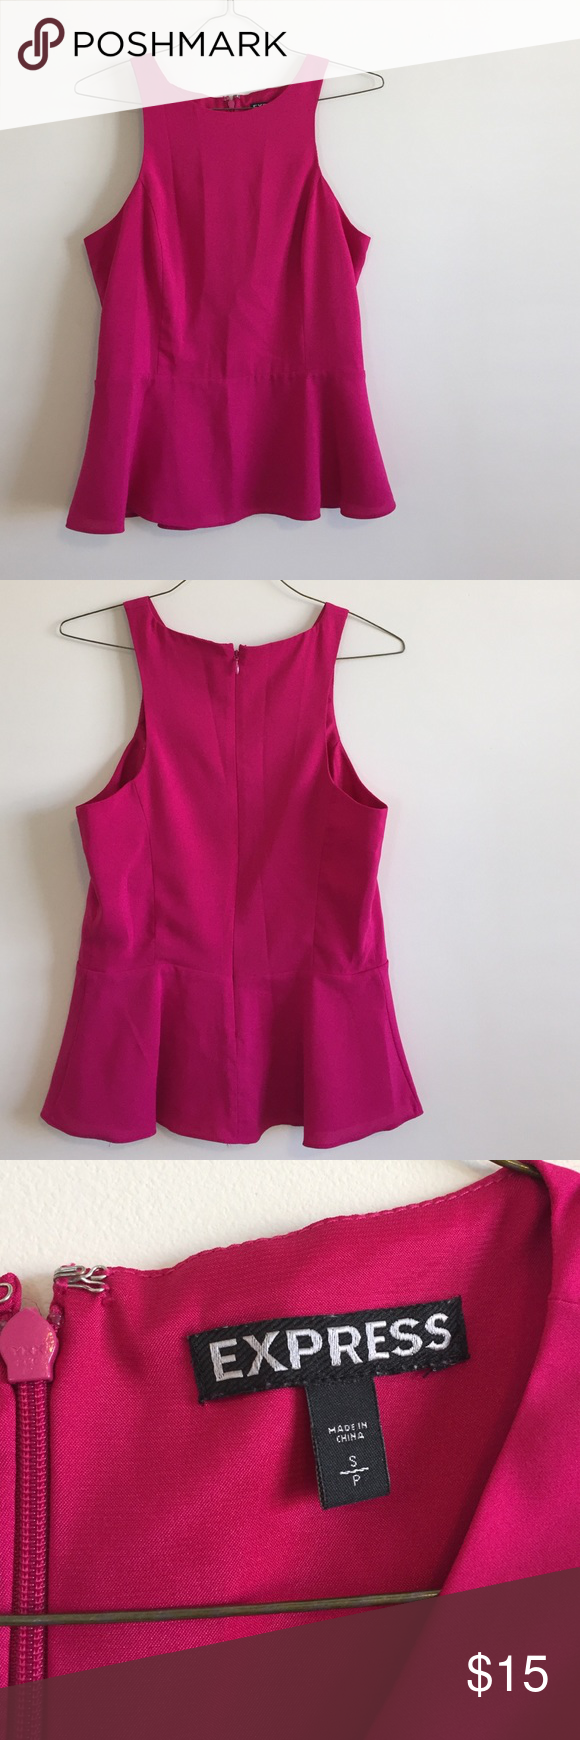 Express Hot Pink Tank Perfect for work, fun hot pink peplum top Express Tops Tank Tops